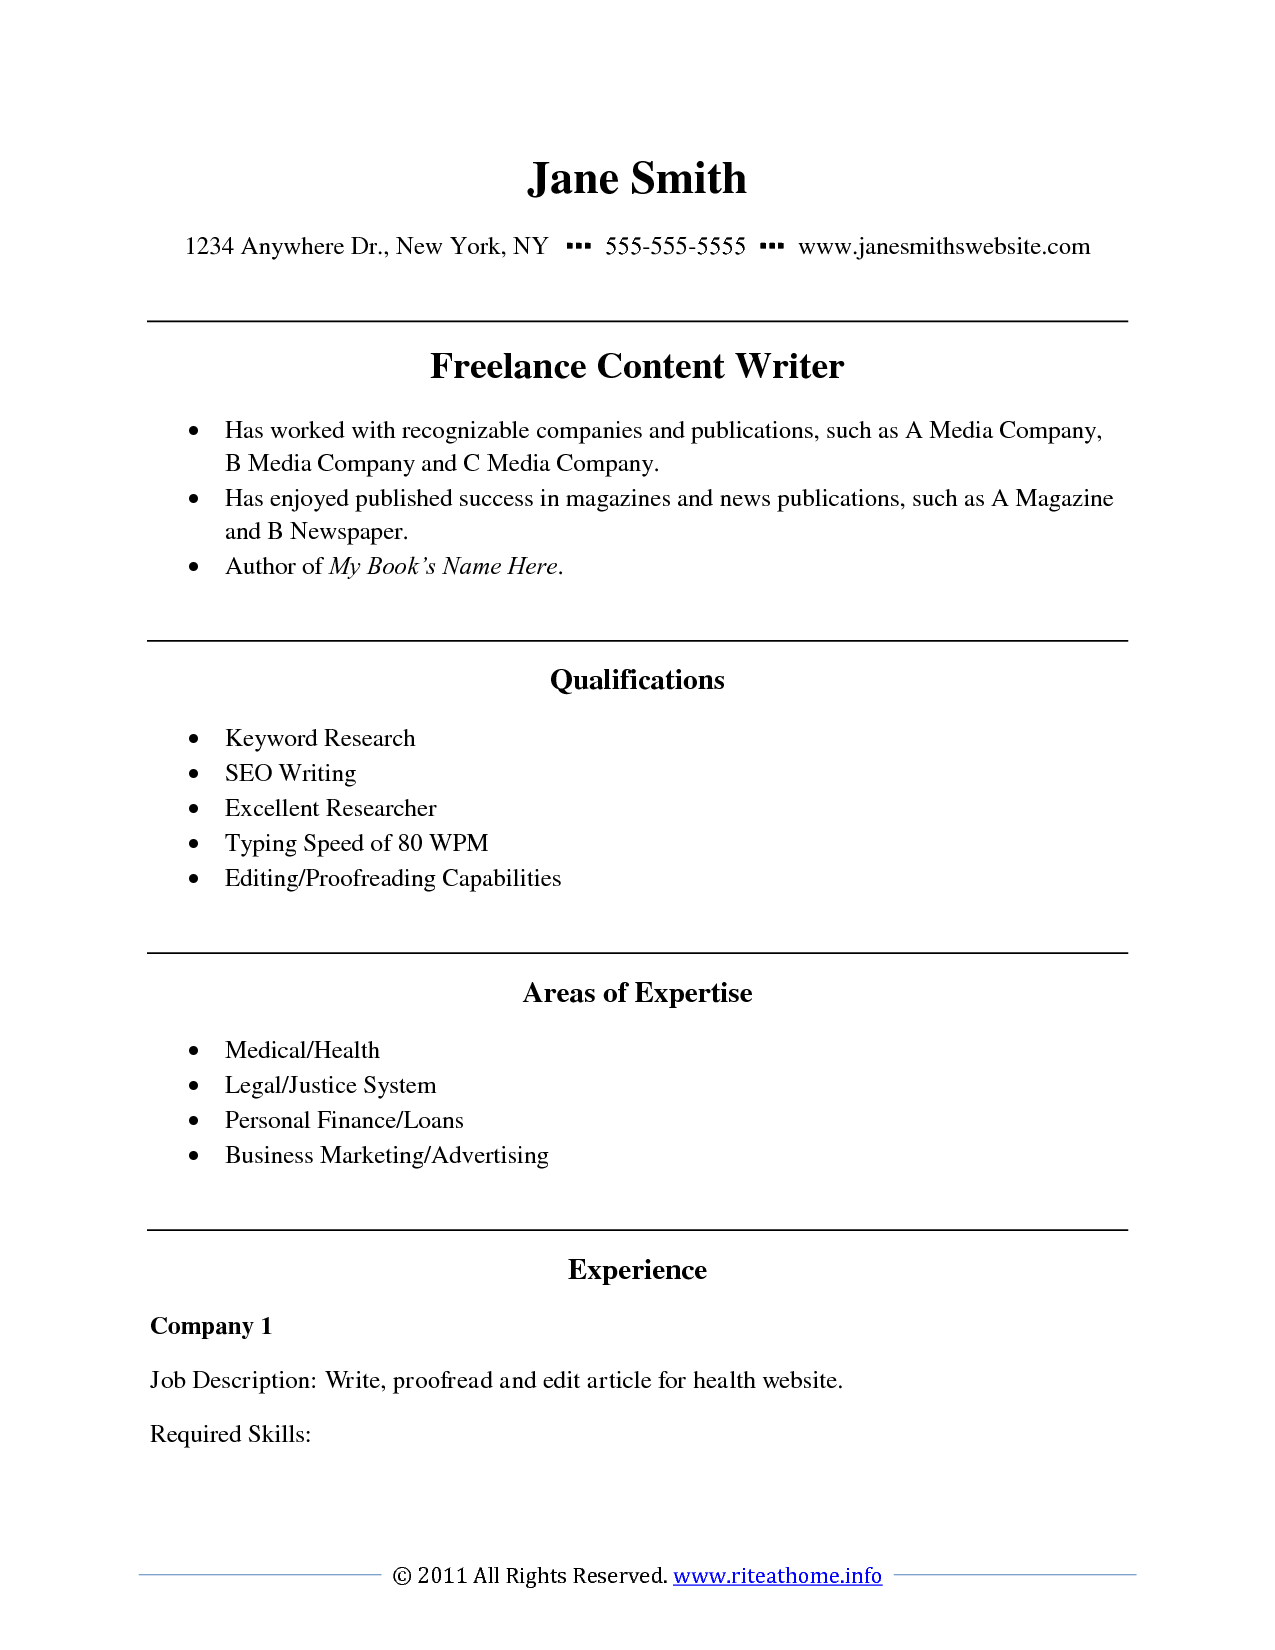 format on how to write a resumes template format on how to write a resumes